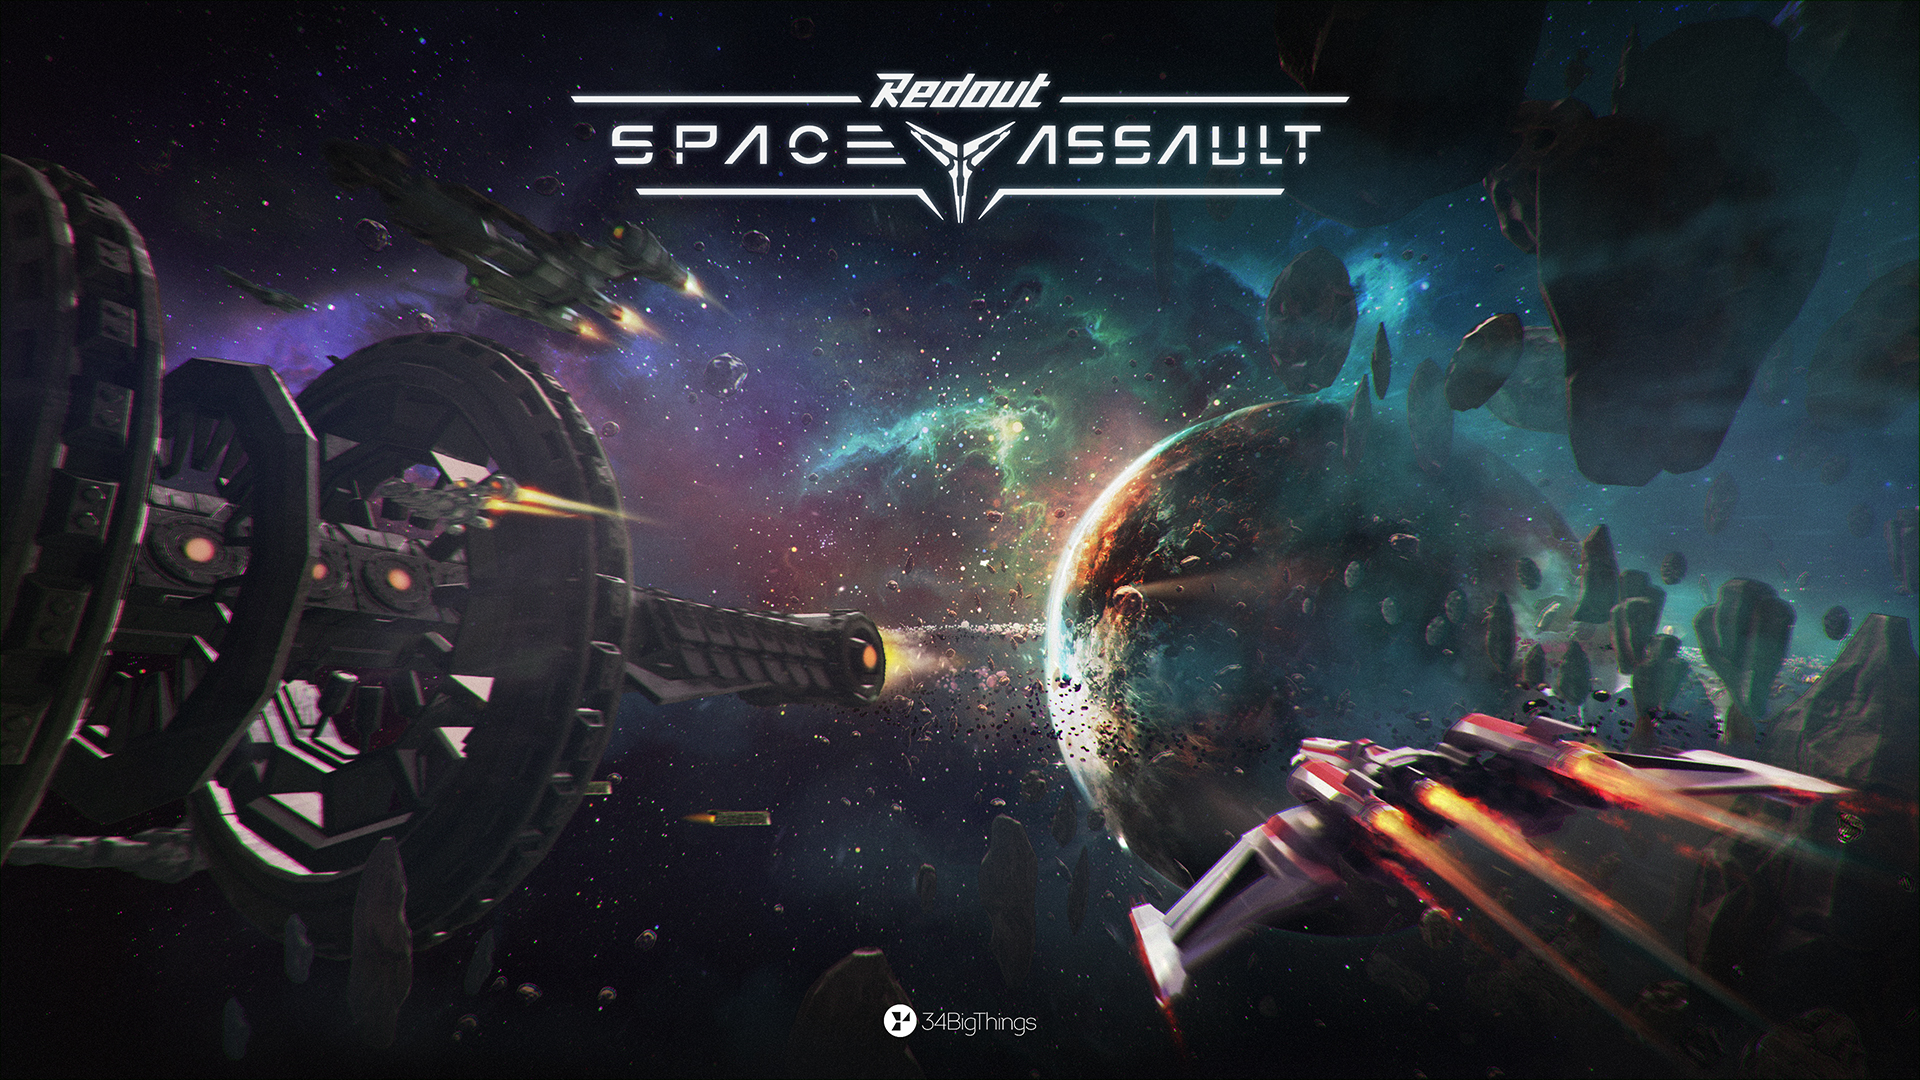 Redout: Space Assault dogfighting spin-off coming to PC during Q1 2019